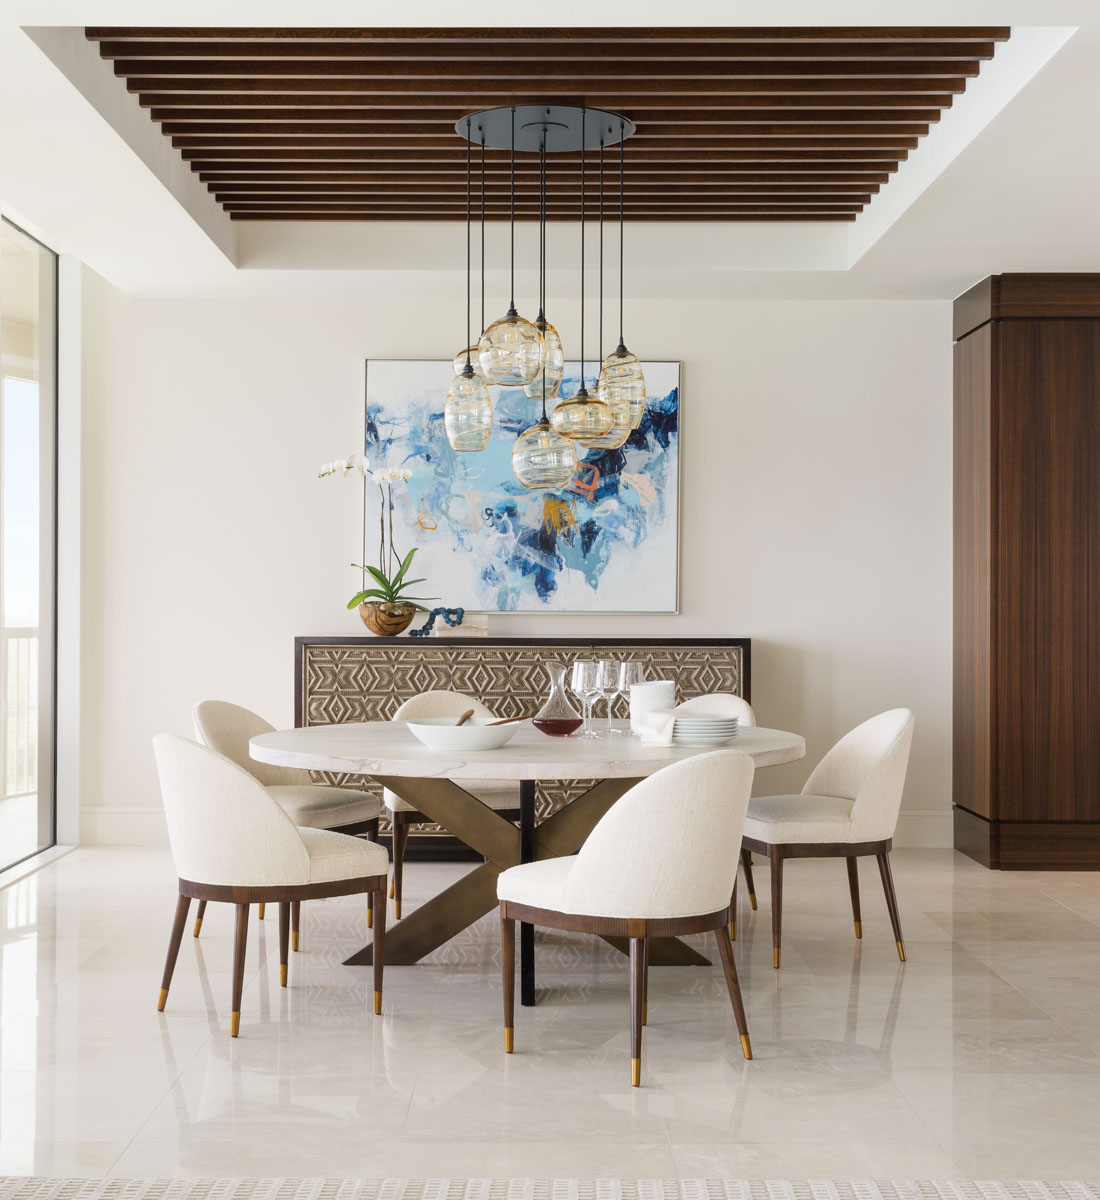 Modified barrel chairs swathed in off-white fabric circle the table topped in bleached burl wood complemented by the Alfonso Marina sideboard. The hand-carved wood piece is expressive and beguiling, while Wonder Clouds, adds a powerful splash of color above.